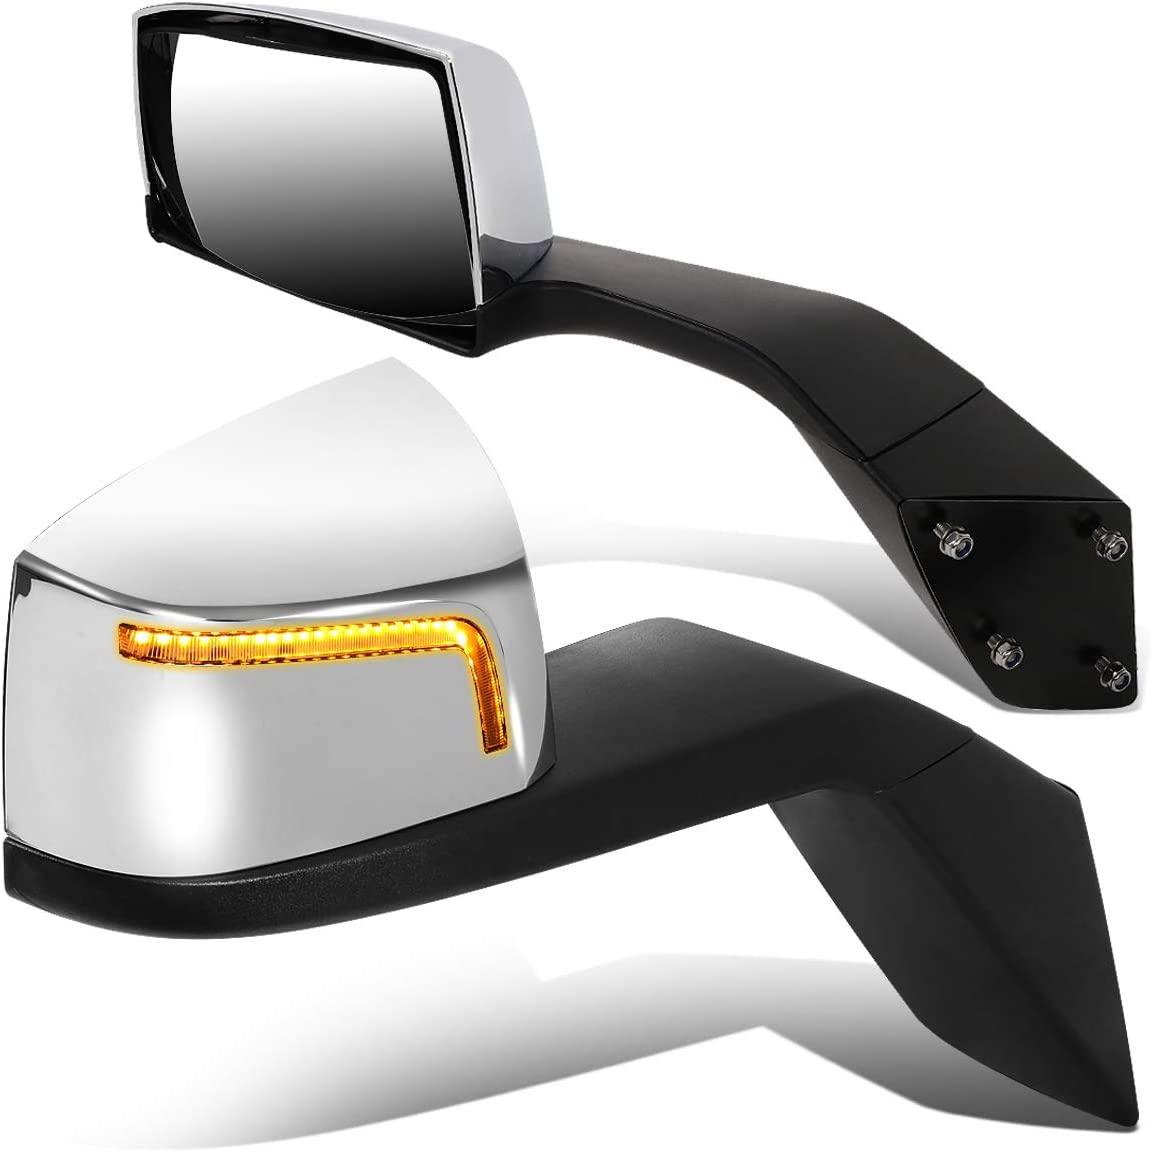 Black//Chrome DNA Motoring MIRROR-HAY-001-BK Pair of LED Sequential Manual Side Hood Mirrors for 04-18 Volvo VN